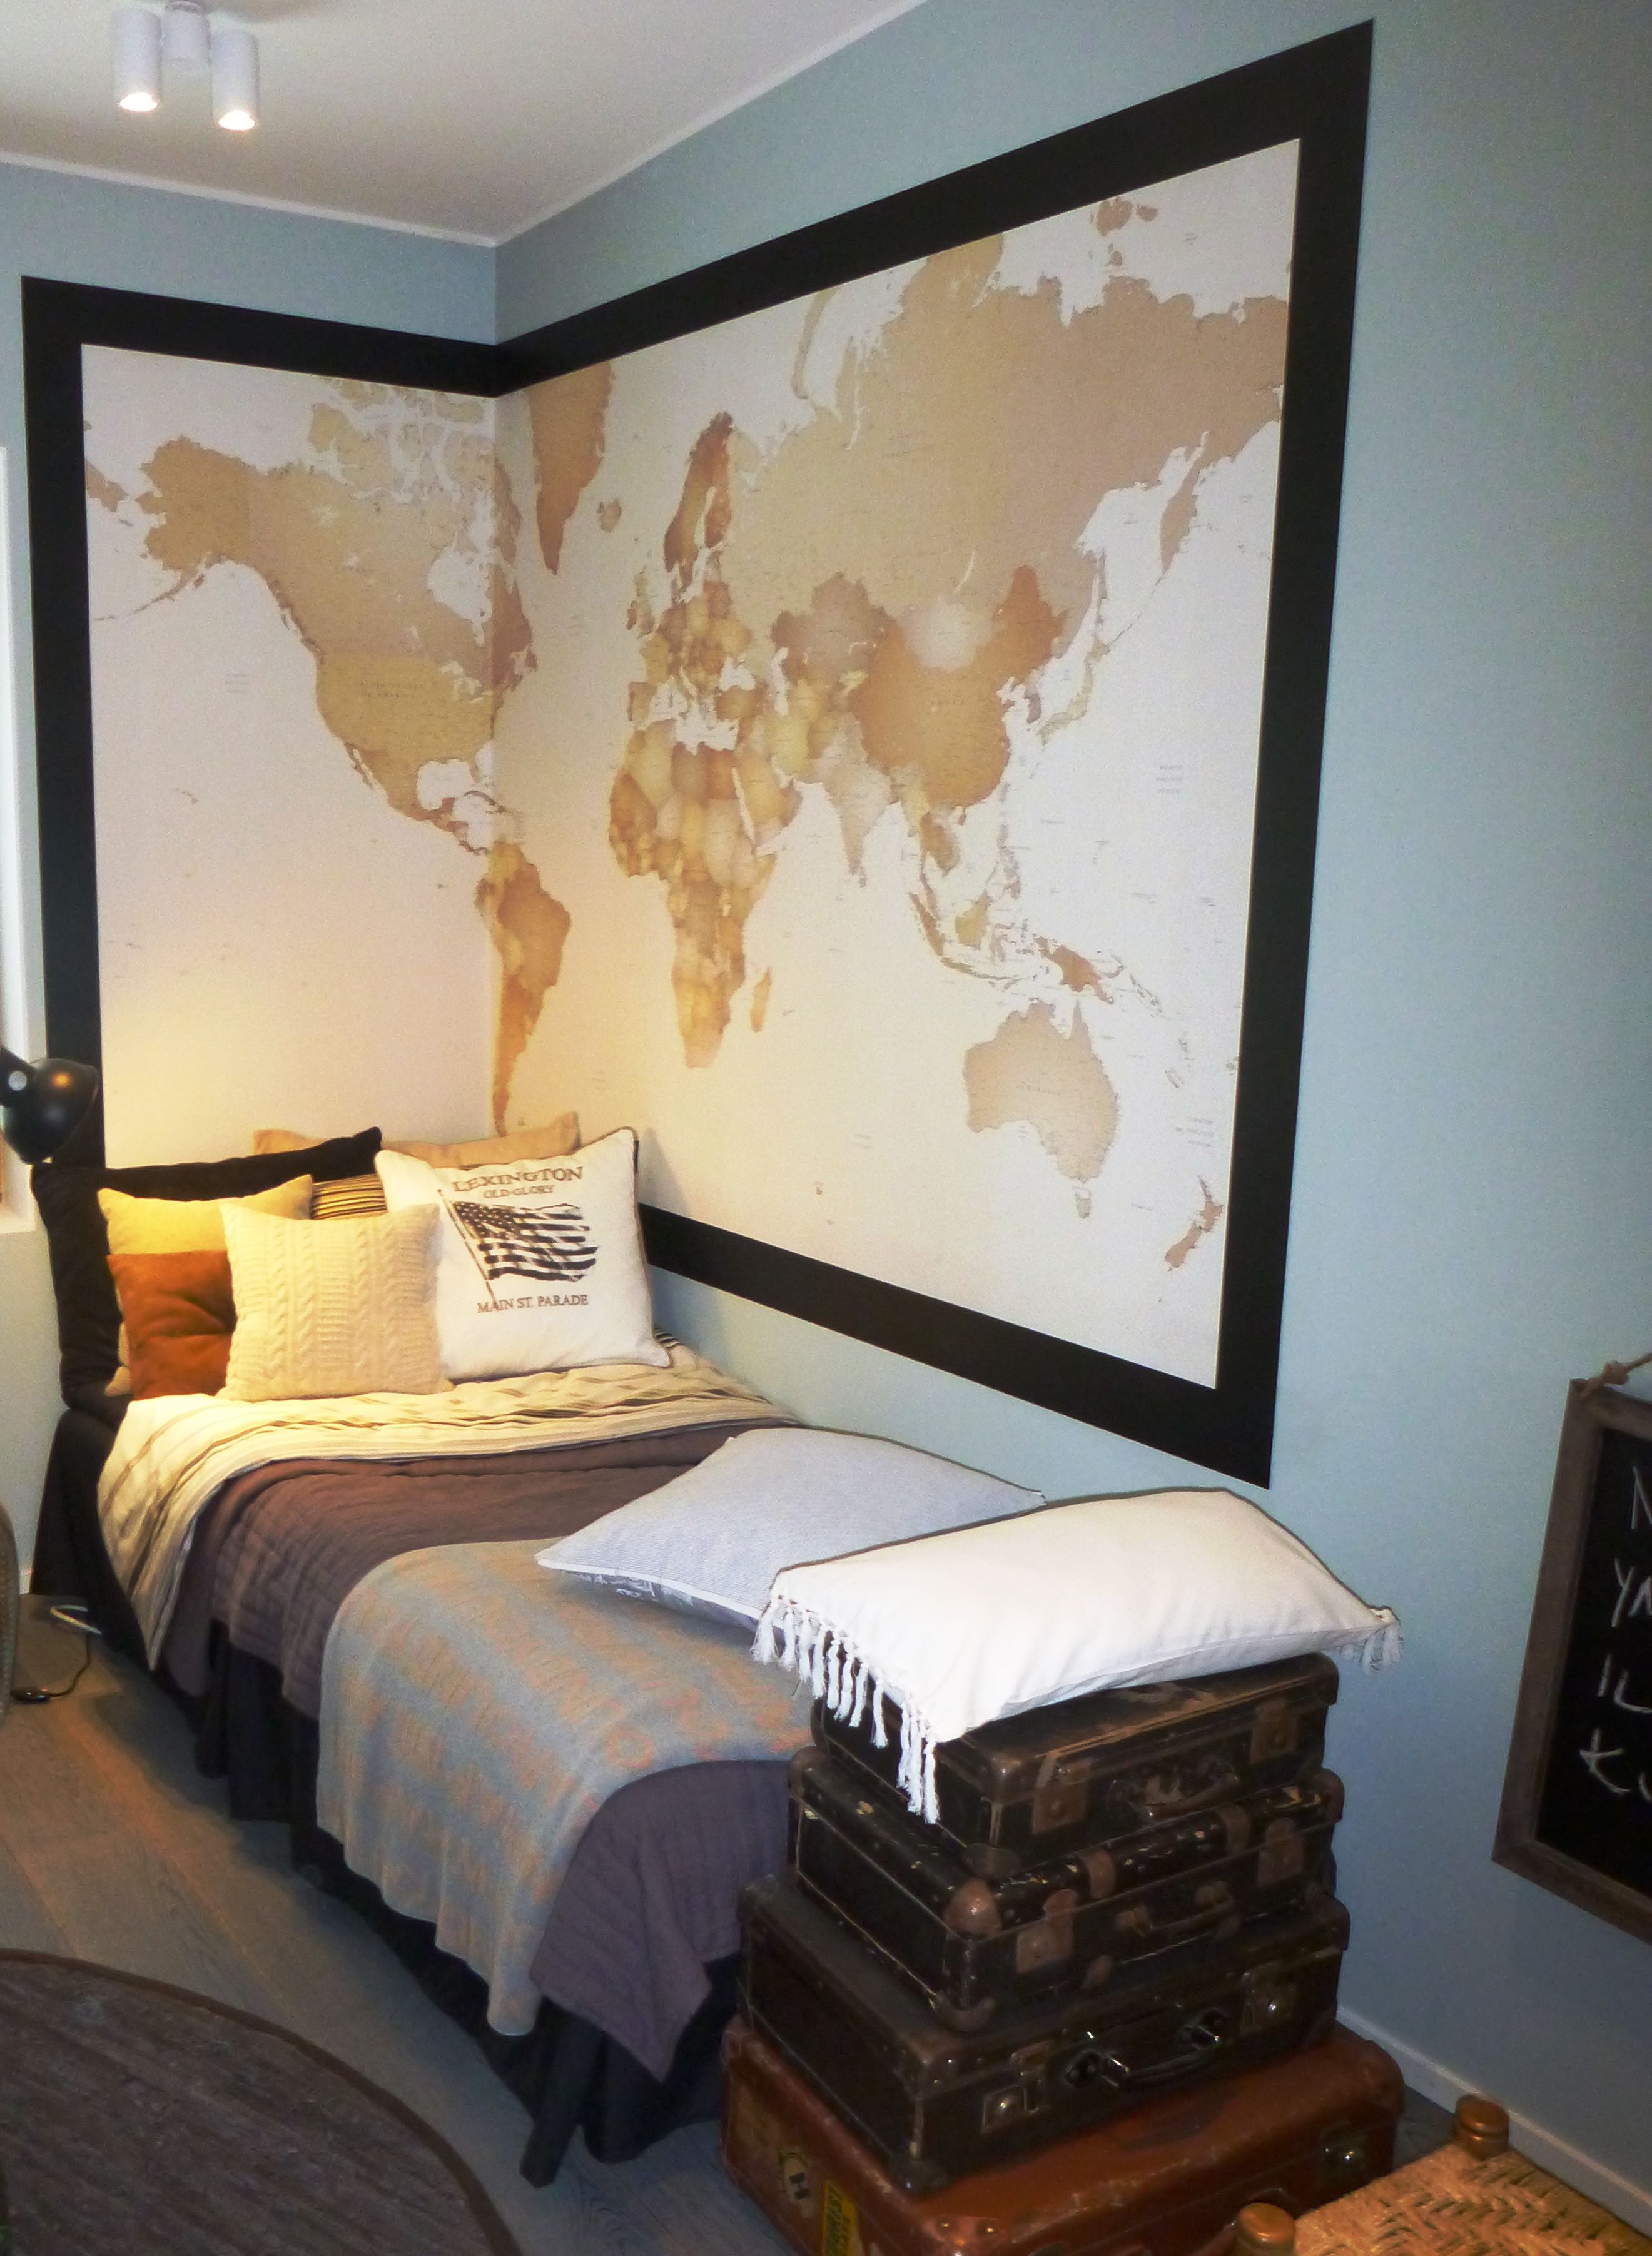 bed sheets | Travel themed bedroom